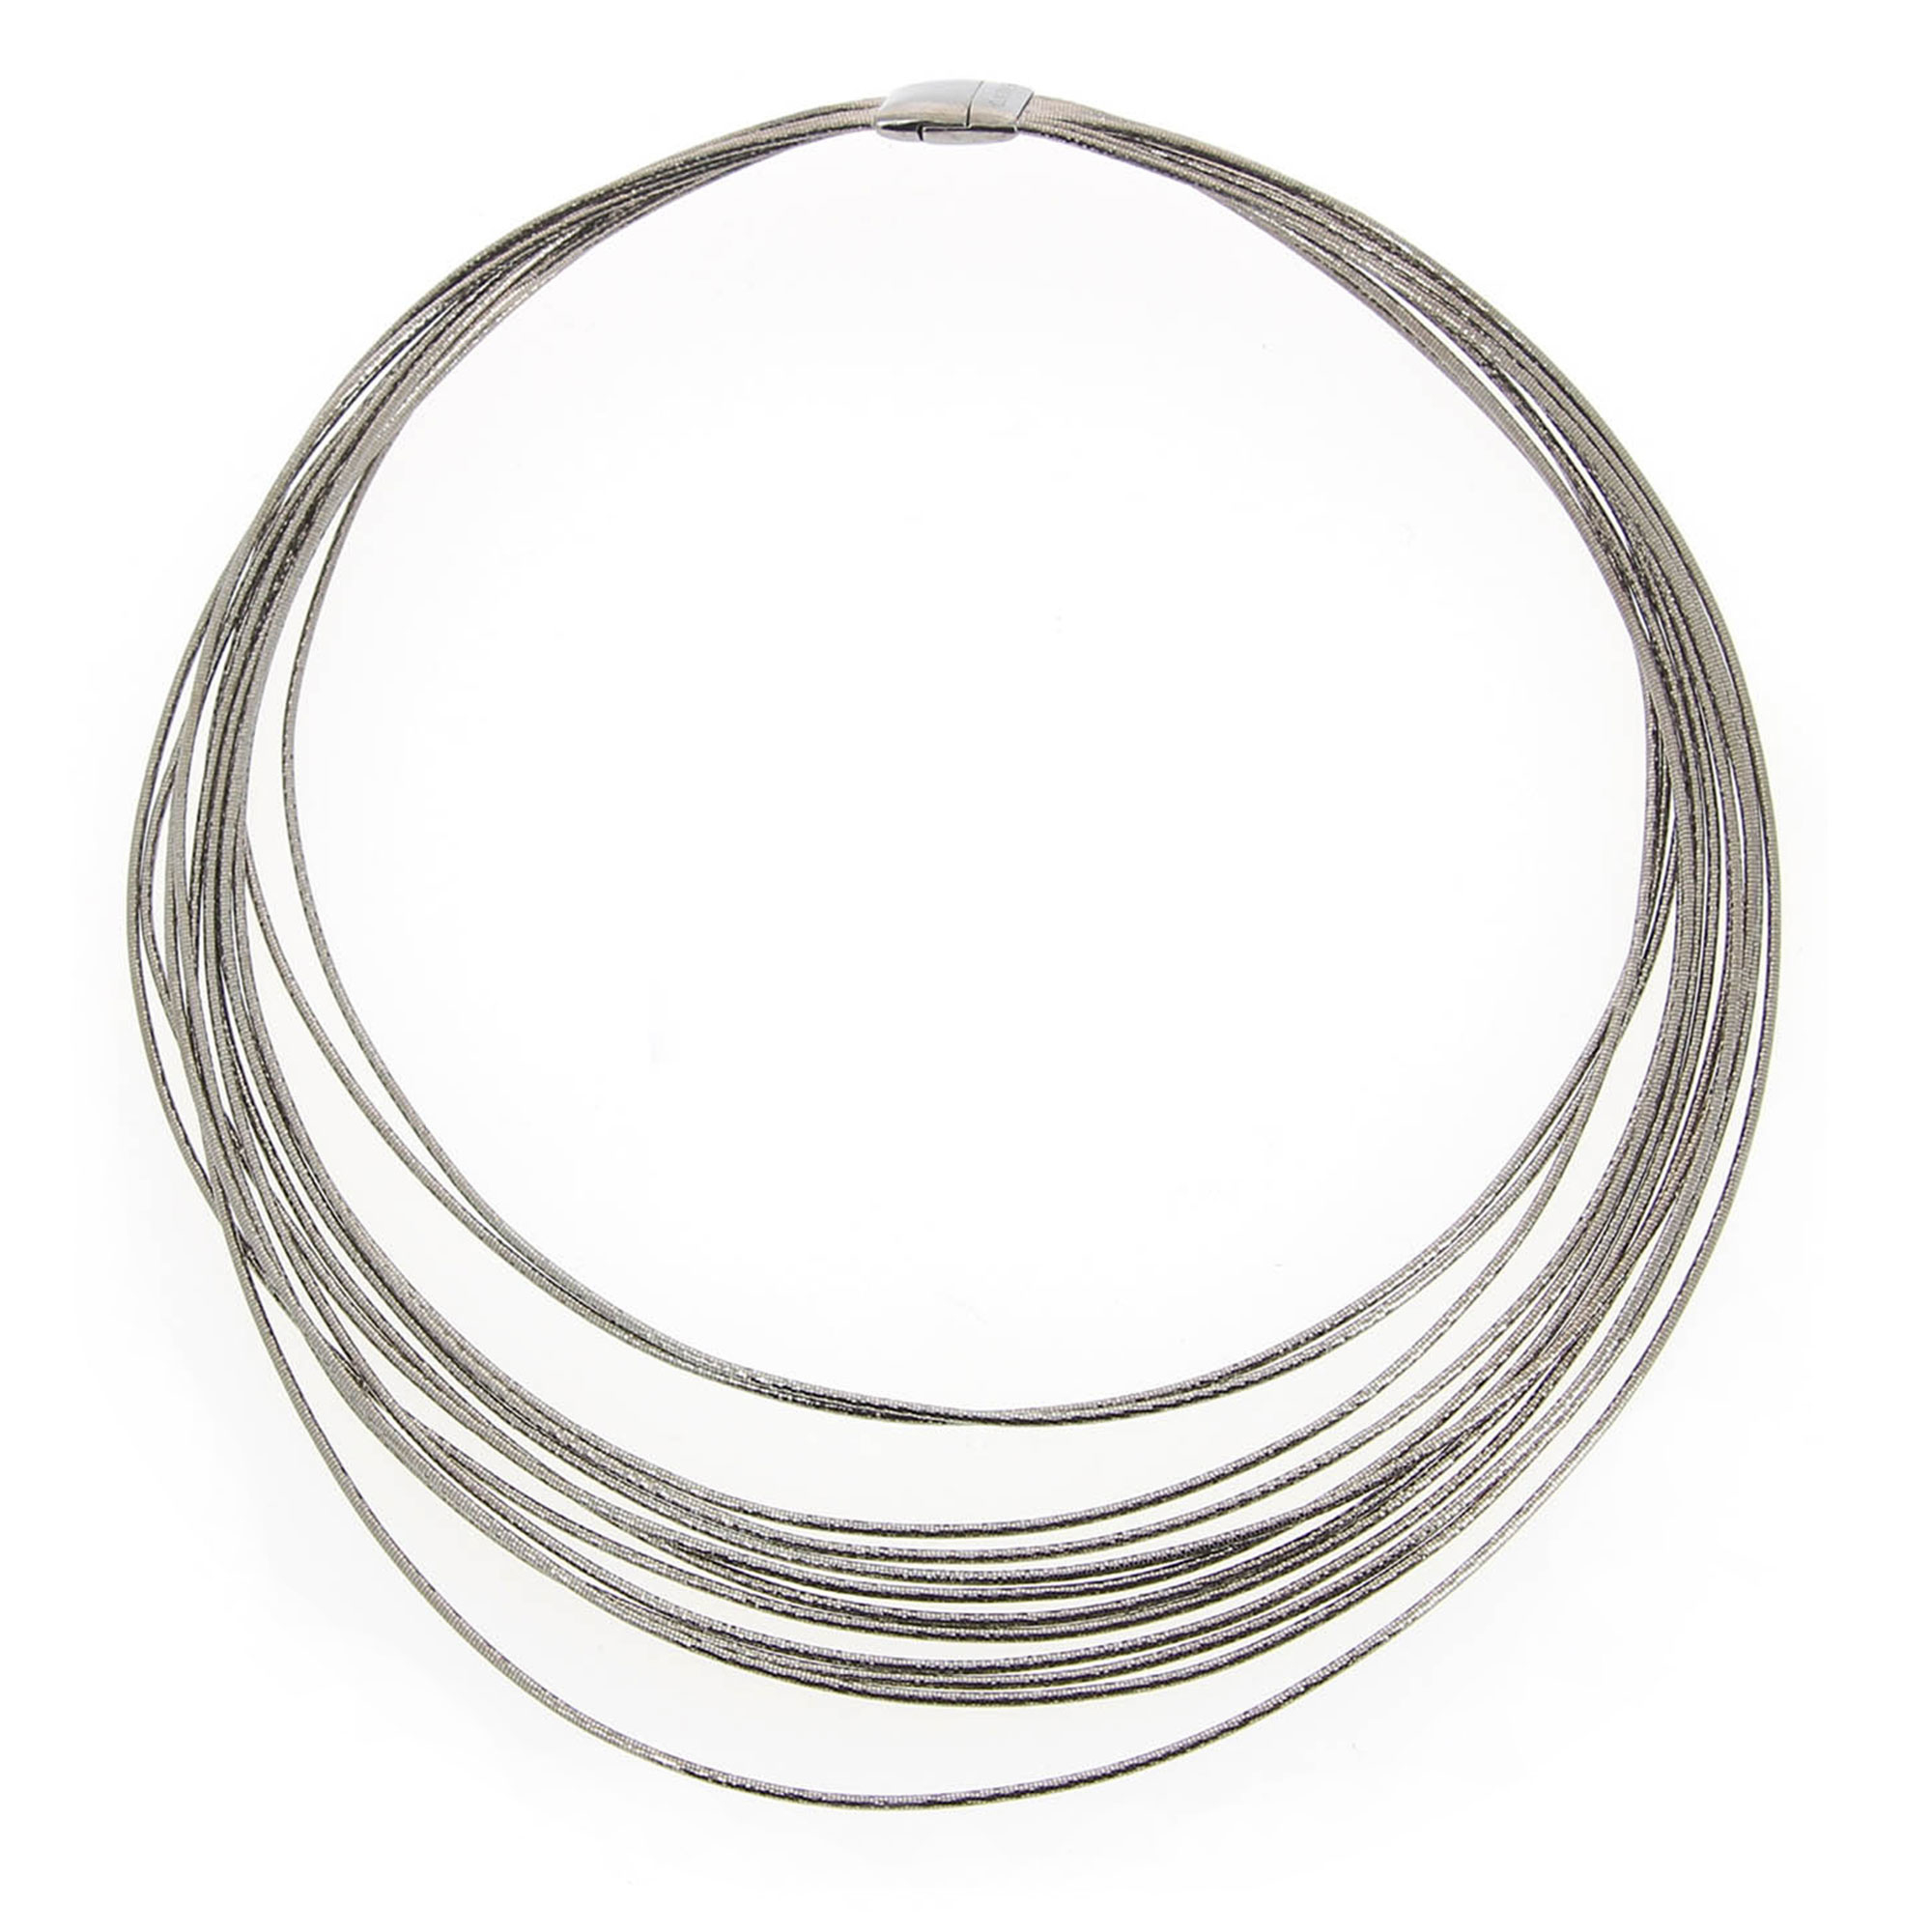 Pesavento  Ruthenium Plated Sterling Silver    SILVER NECKLACE/BROOCH WDNAG035